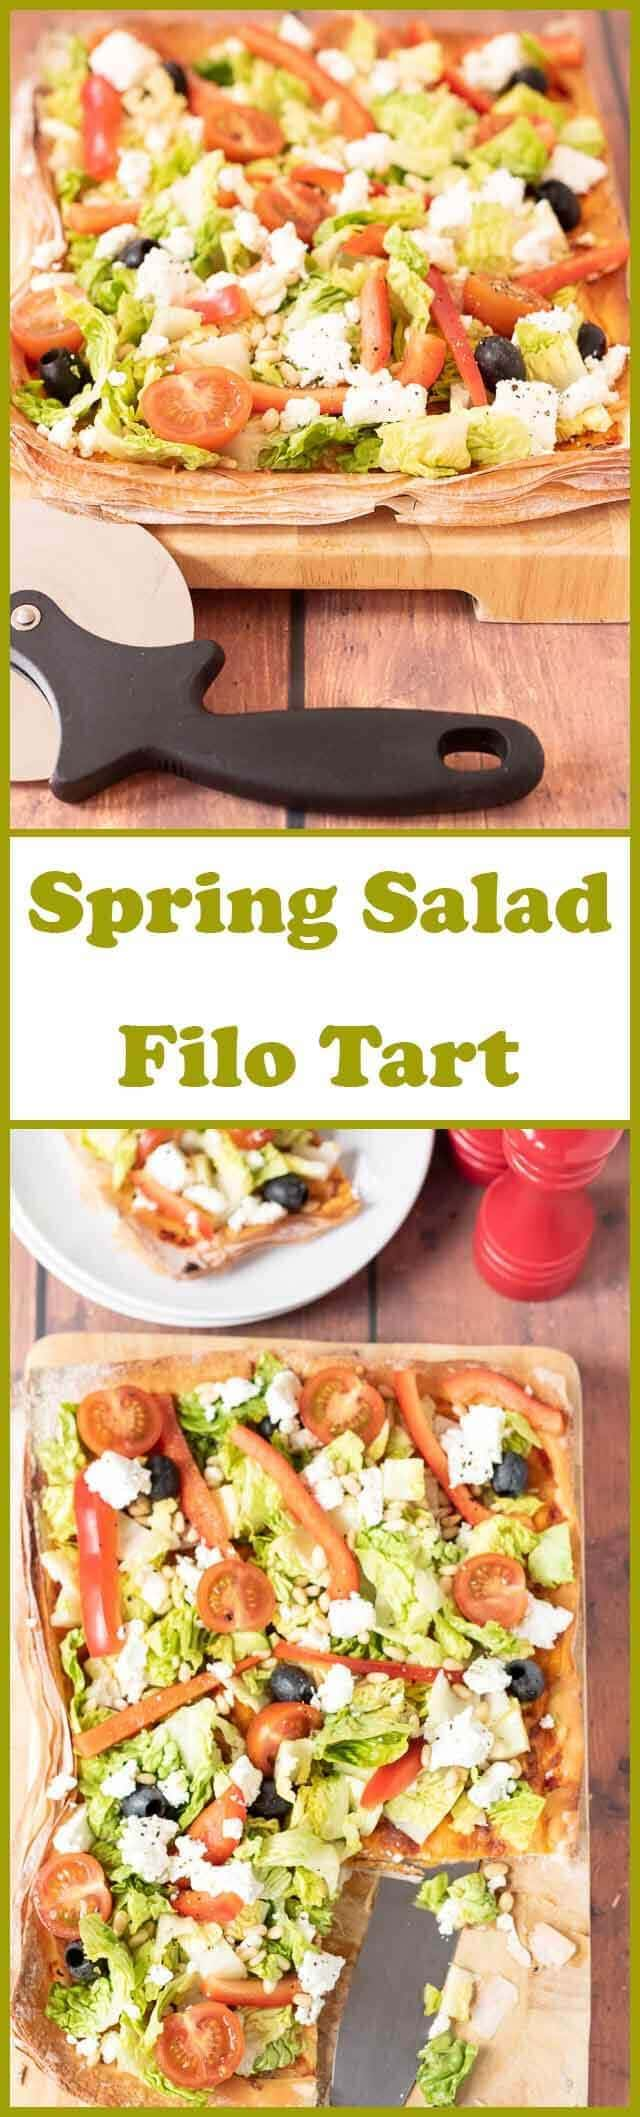 Spring salad filo tart is packed full of delicious fresh seasonal flavours. It's really easy to make, low cost and perfect if you're short on time. This family sharing recipe is made from filo pastry so has that wonderful flaky and satisfying crunch when you bite into it!